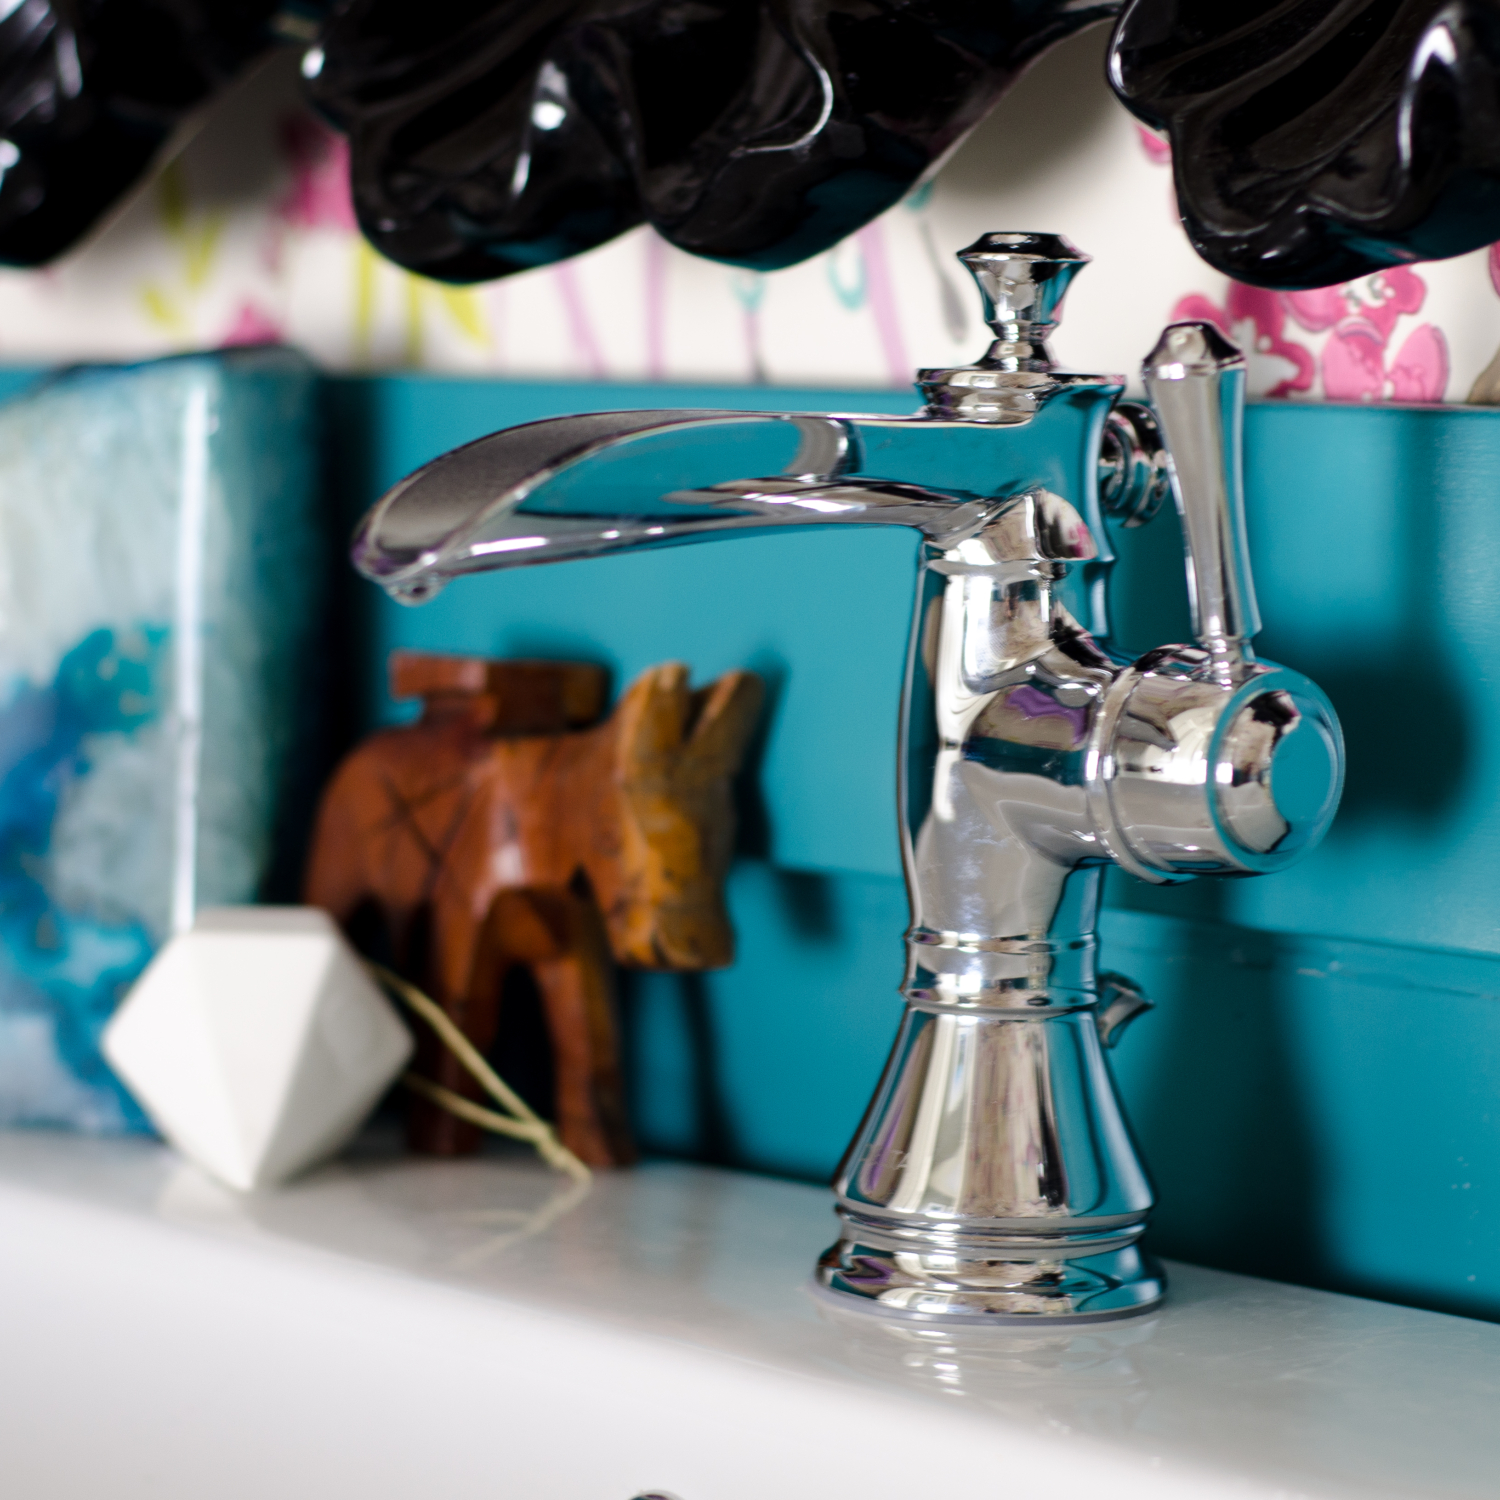 Chrome channel spout faucet